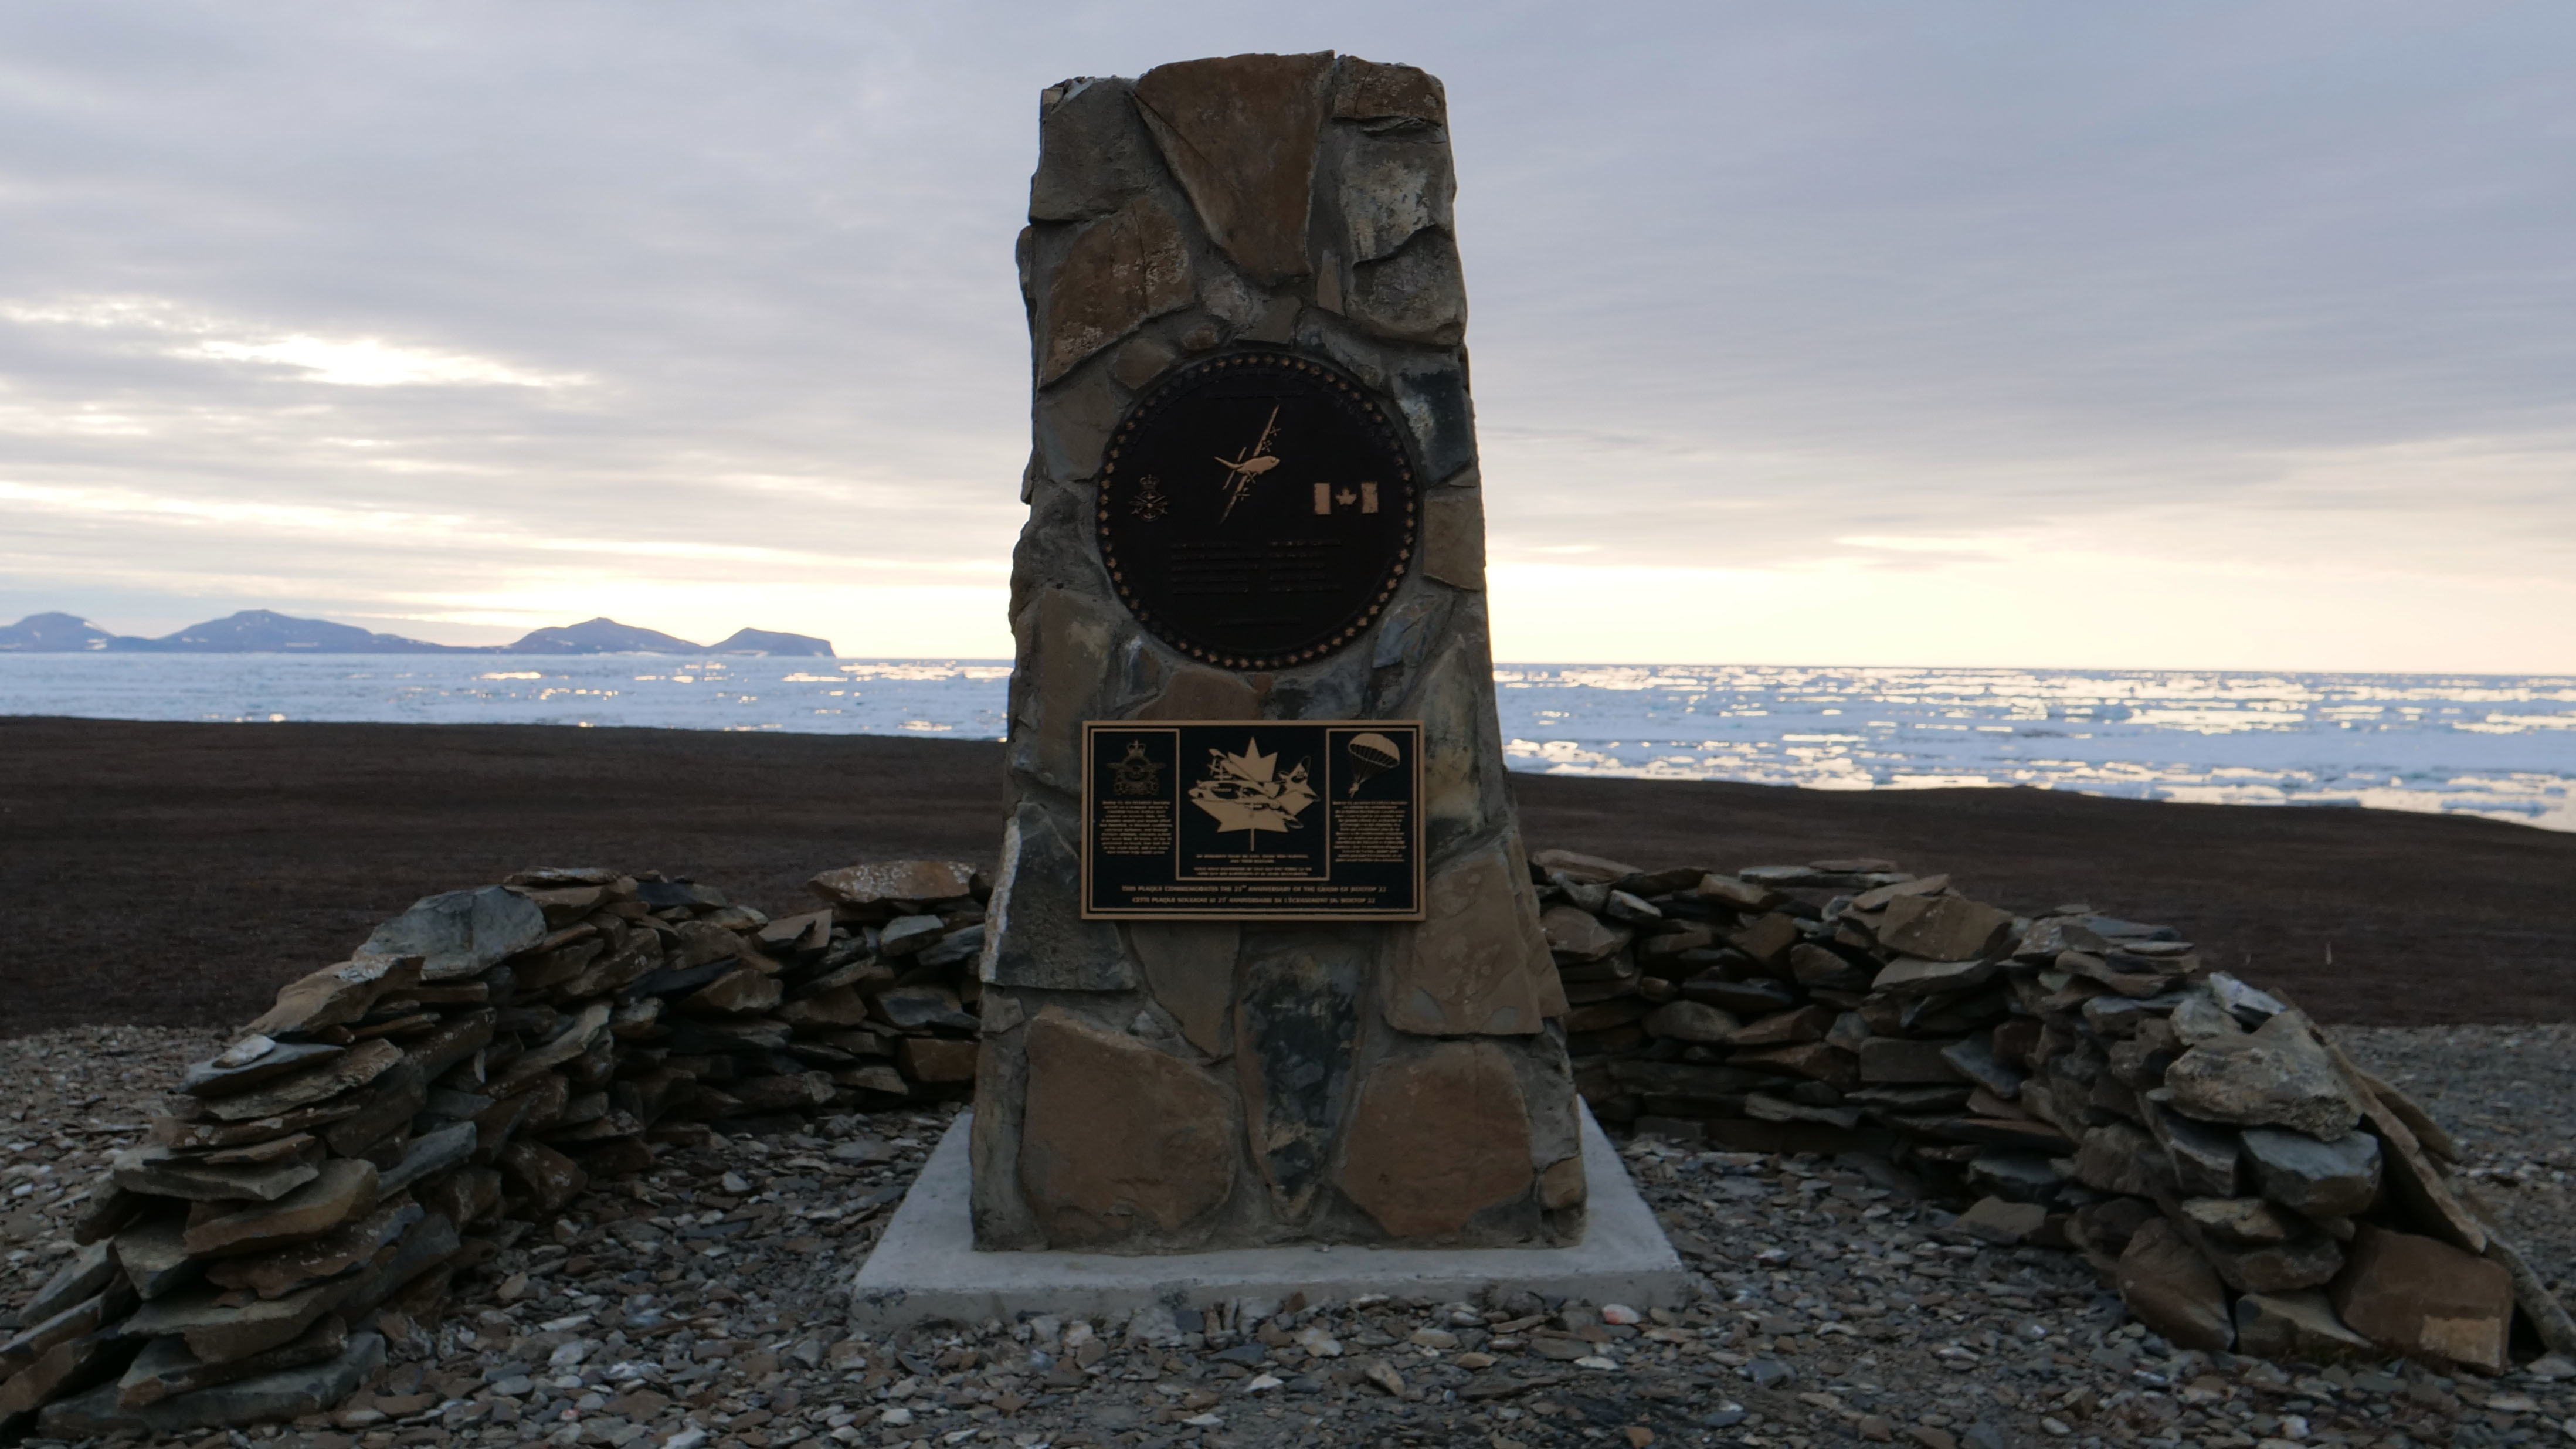 This memorial is located near the nine crosses on the coast. It's a reminder of the sacrifices made to keep the people stationed at the outpost fed, clothed and connected to their loved ones. (Mario DeCiccio/Radio-Canada)